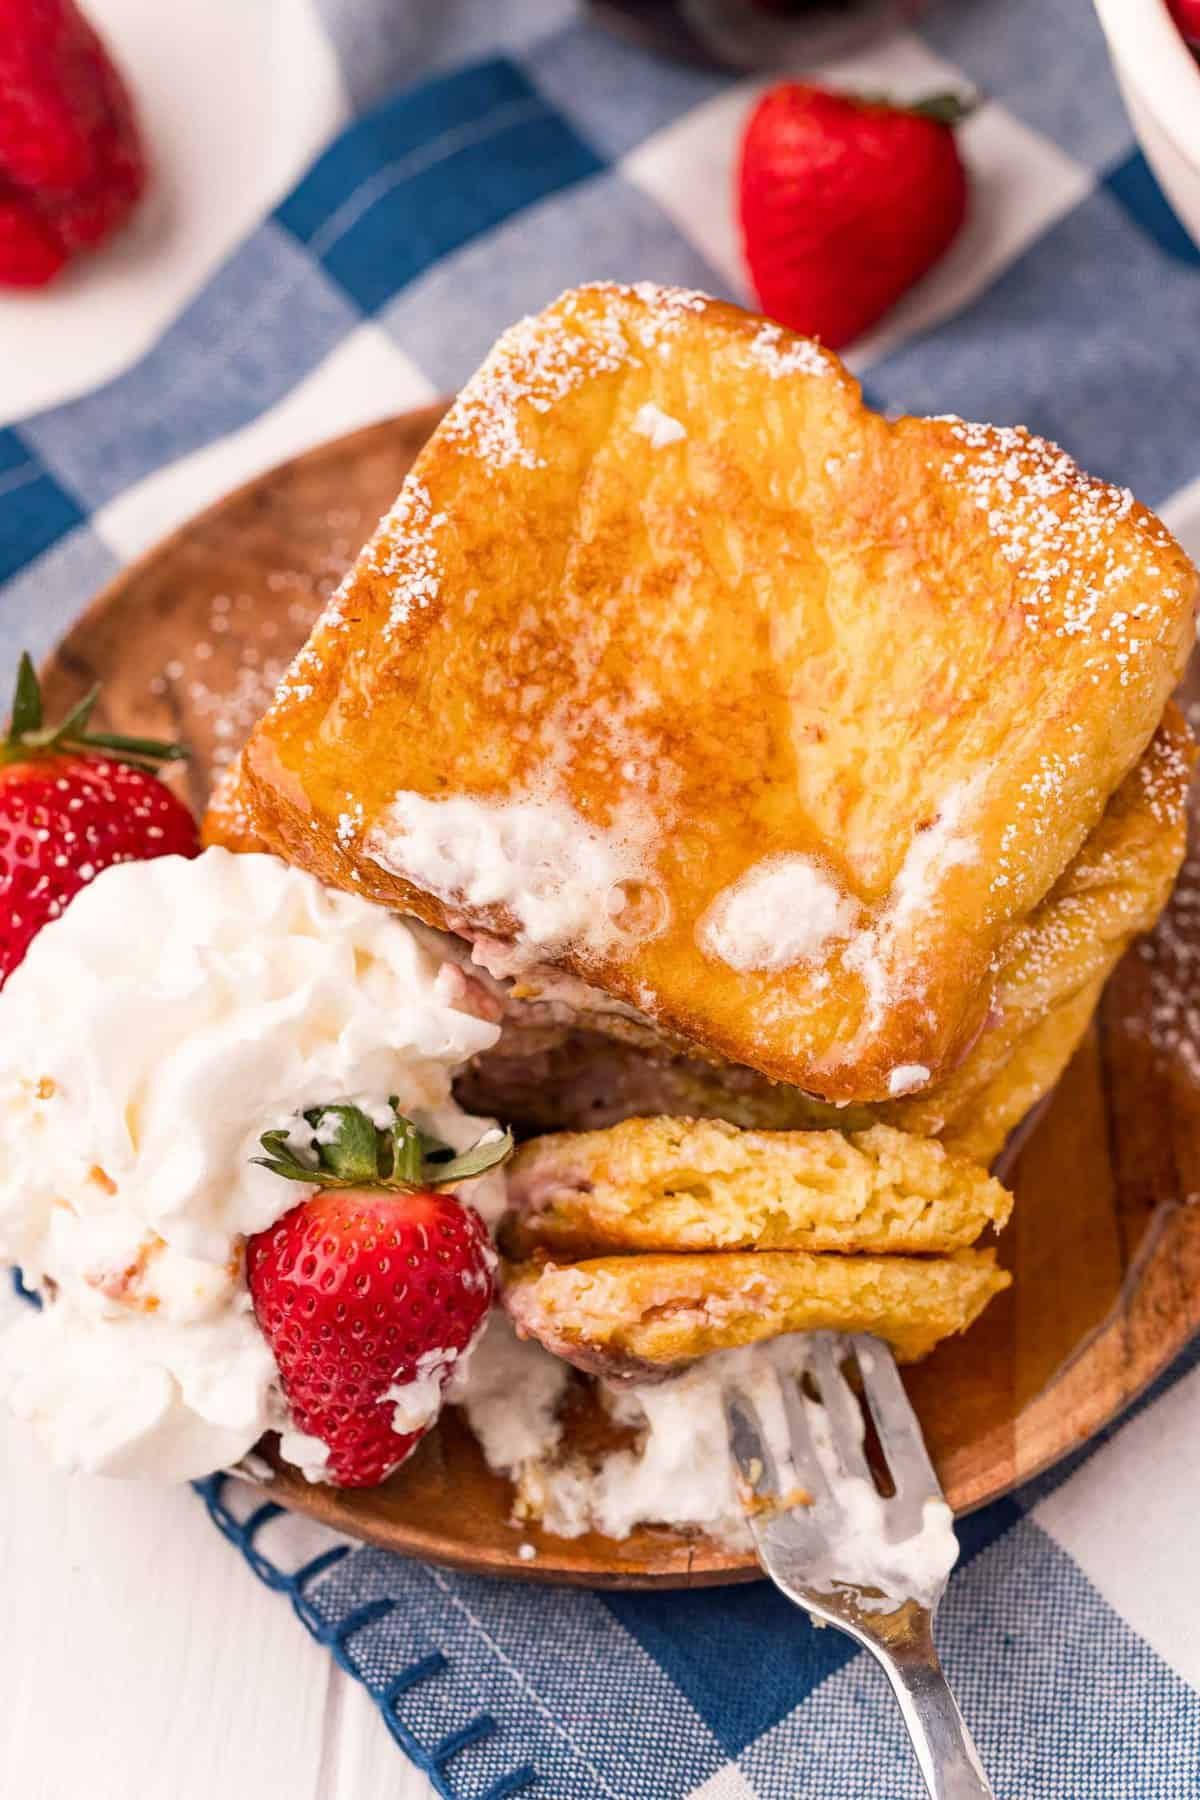 Stuffed french toast, with some on a fork.